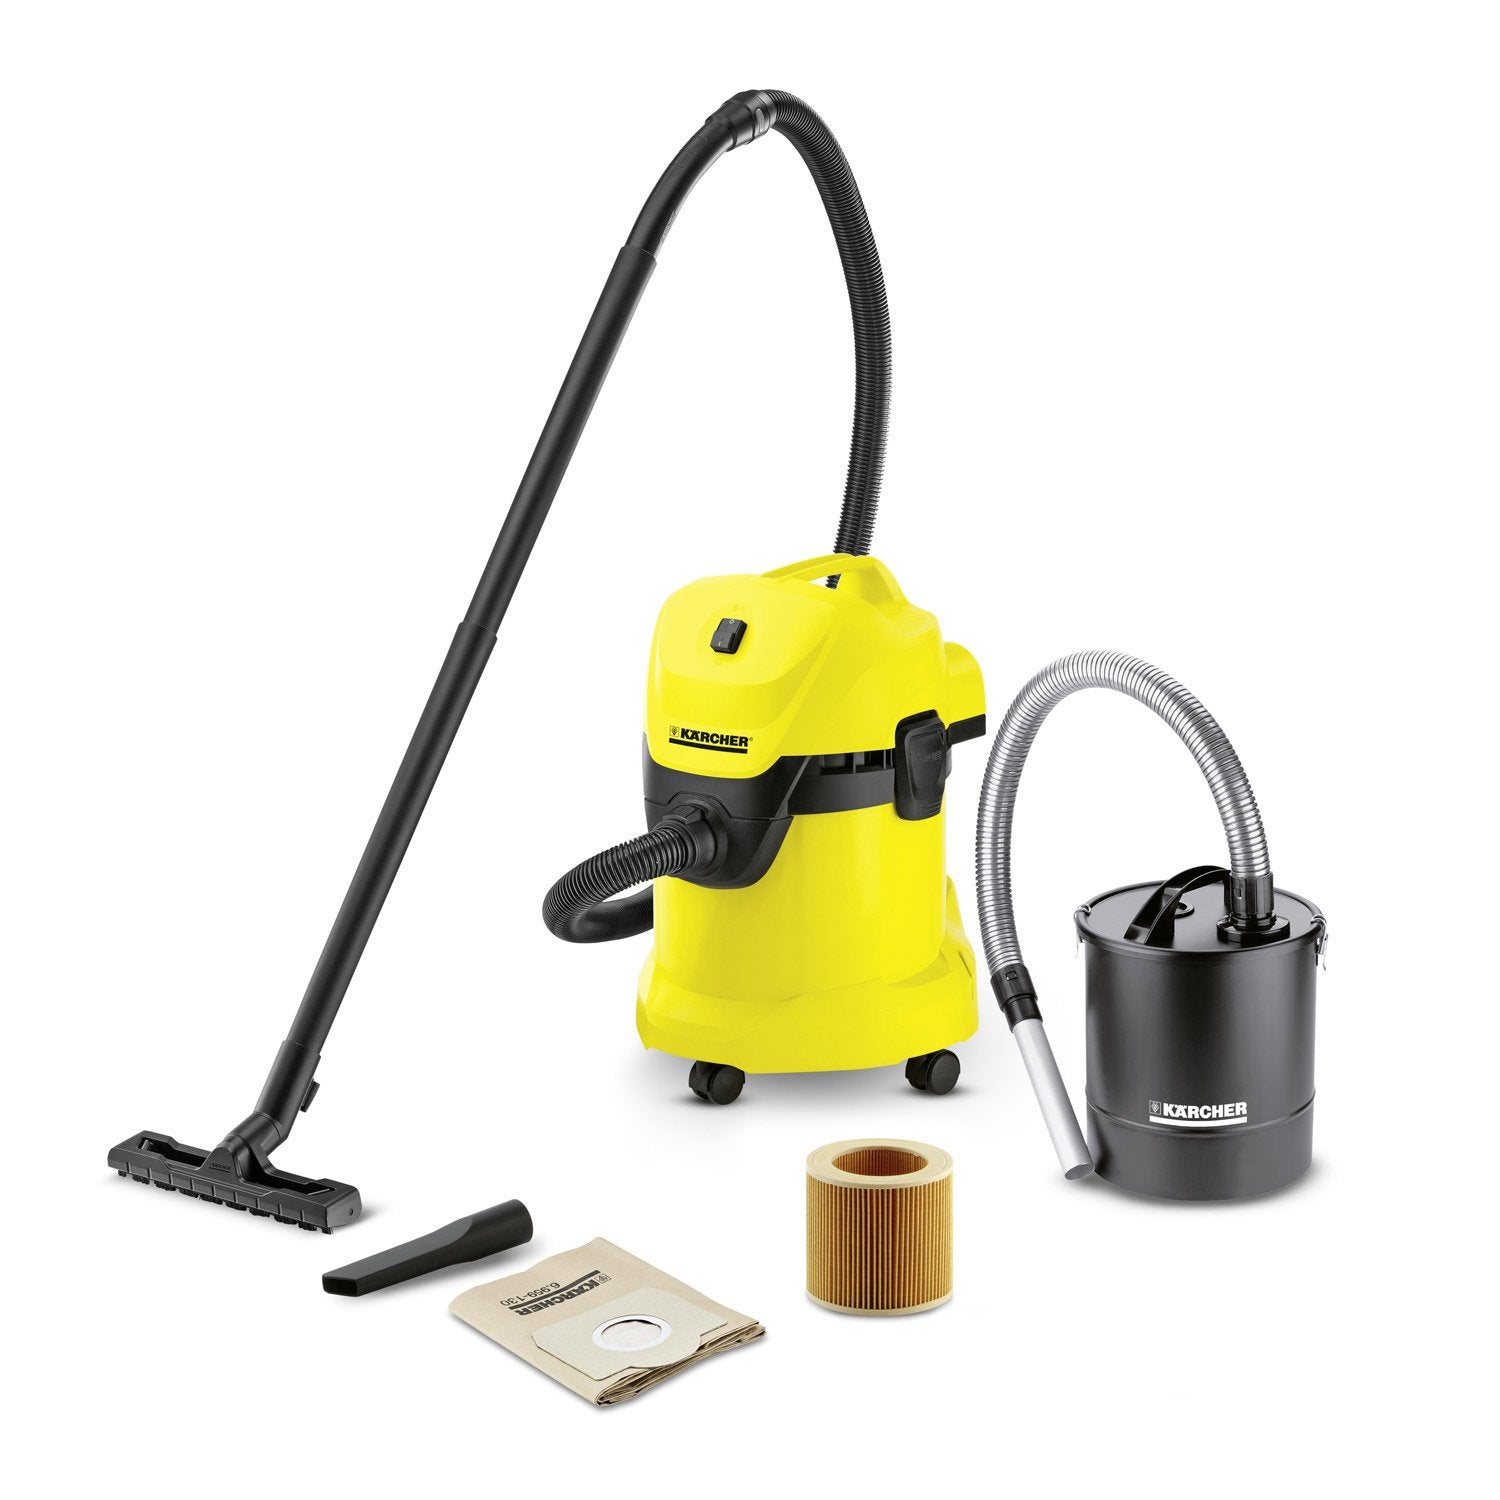 aspirateur industriel eau et poussi res karcher wd3 fireplace kit 21 kpa 17 l leroy merlin. Black Bedroom Furniture Sets. Home Design Ideas